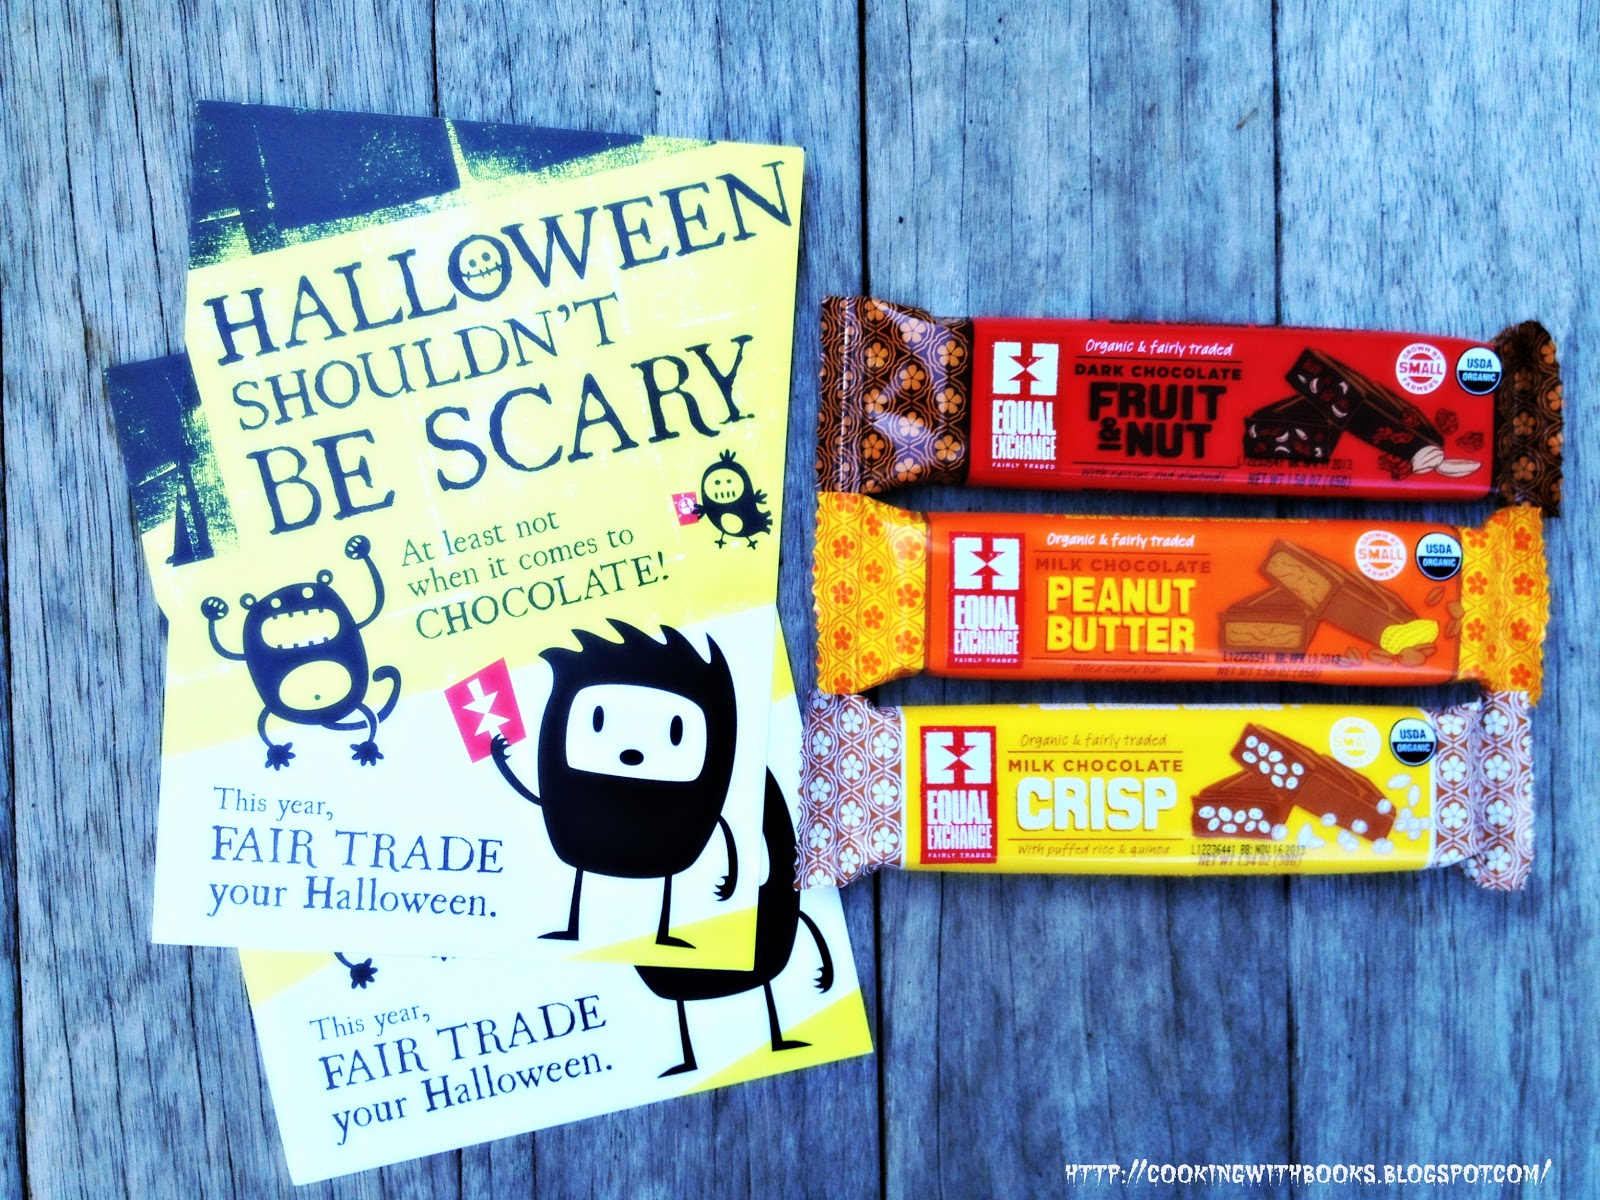 Celebrate Halloween & Fair Trade with Equal Exchange Chocolate ...